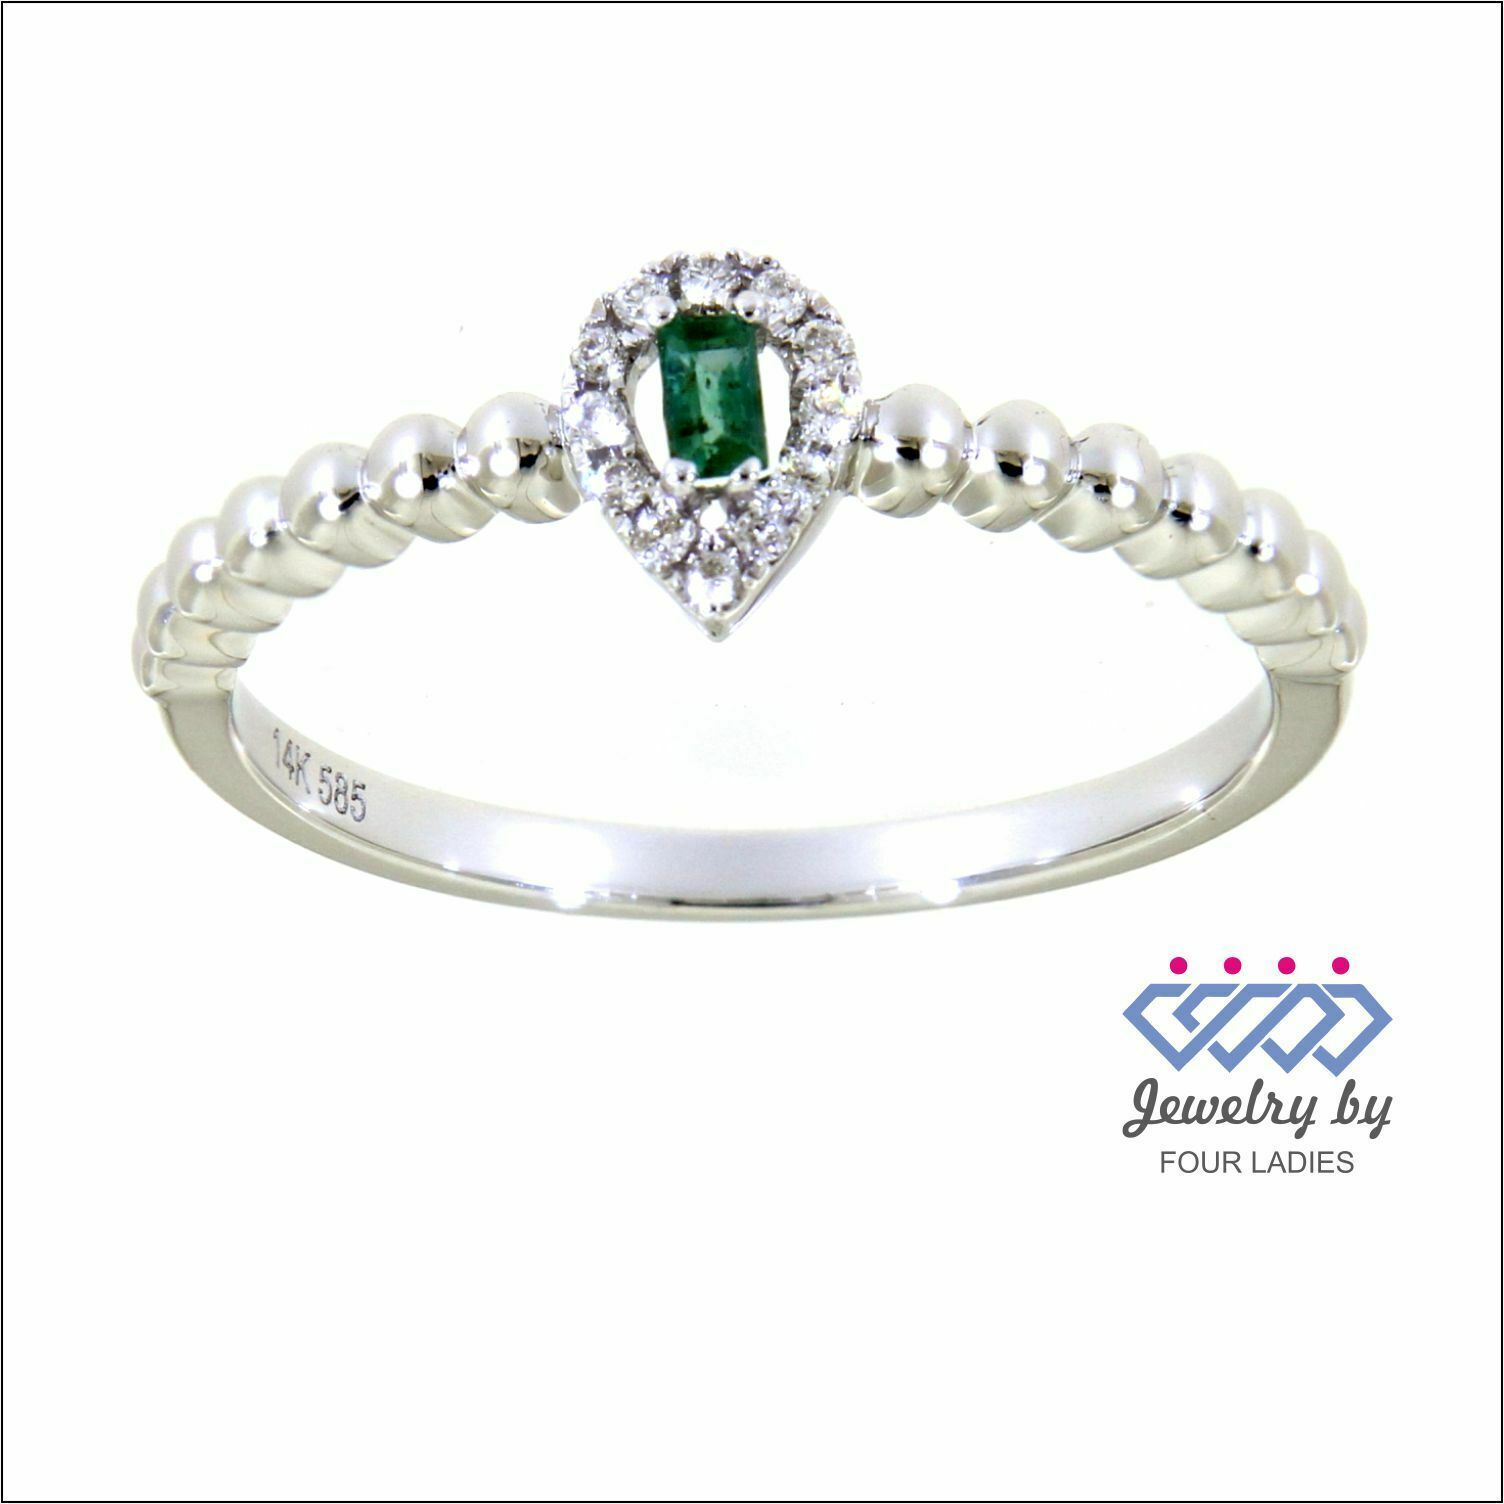 Primary image for Emerald Gemstone 14K White Gold 0.06 Carat Natural Diamond Delicate Ring Jewelry